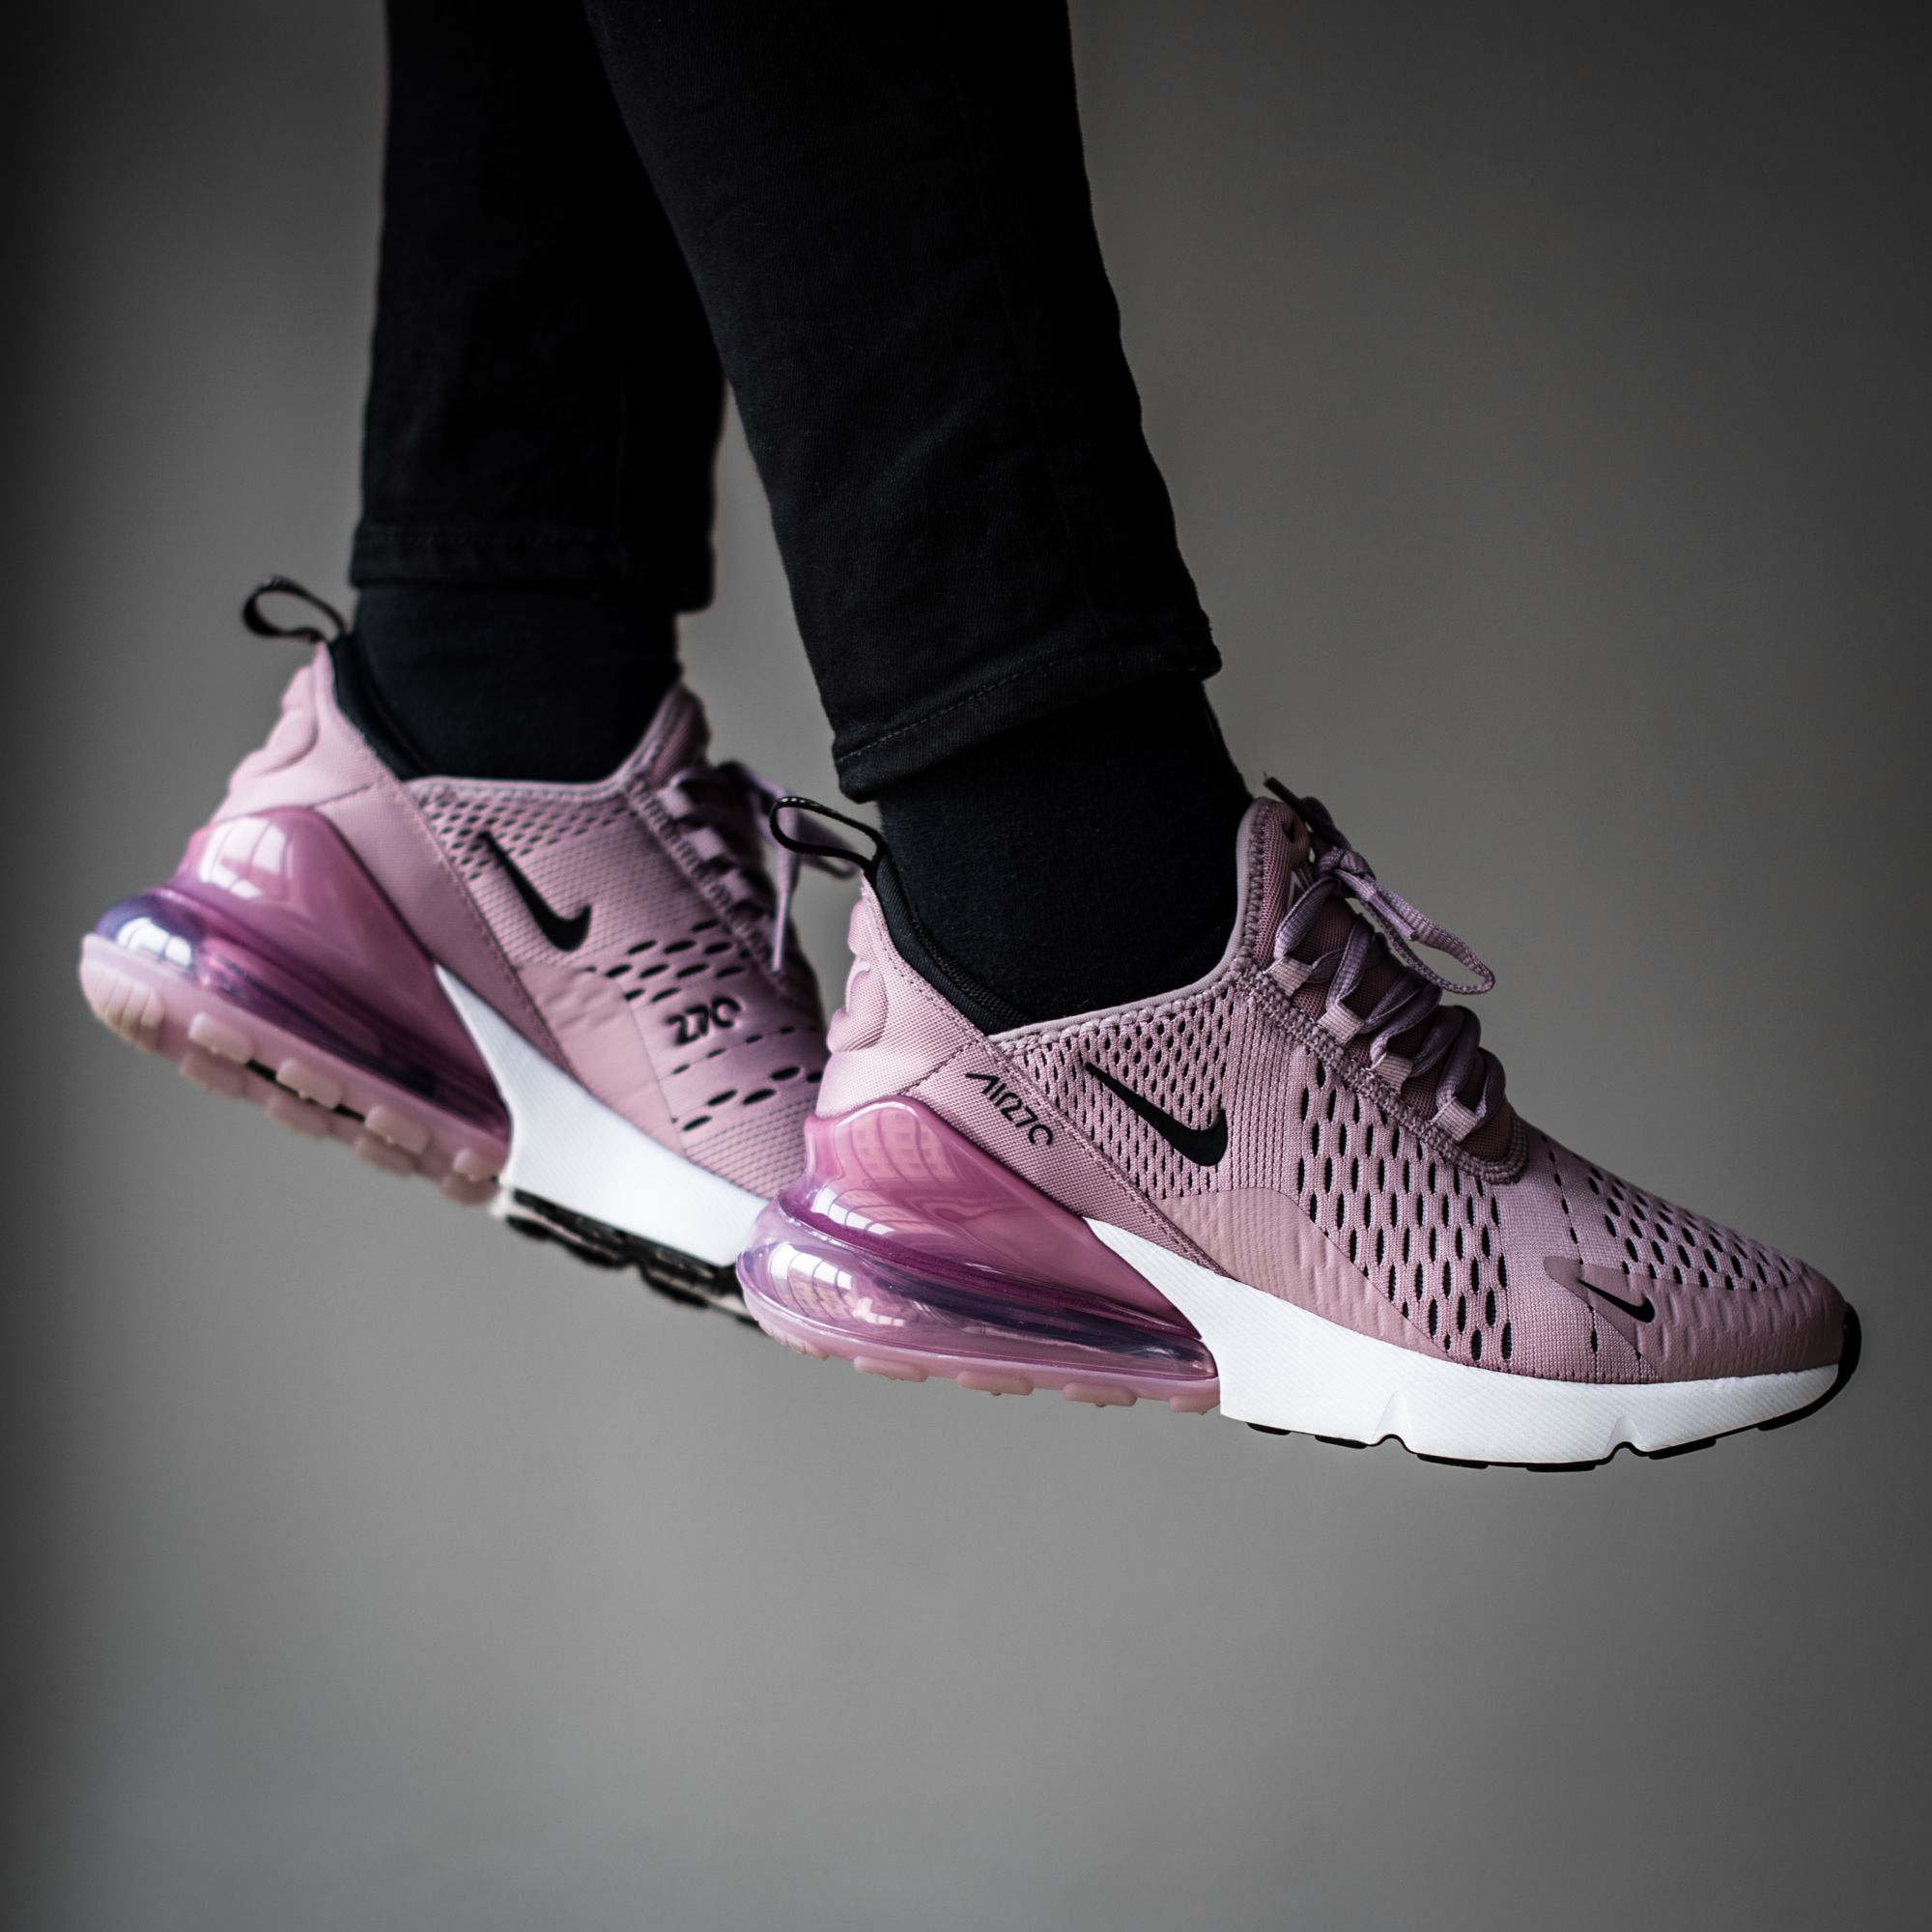 The Air Max 270 in a purple coloring is soon available on kickz.com ... 64f42b68a2